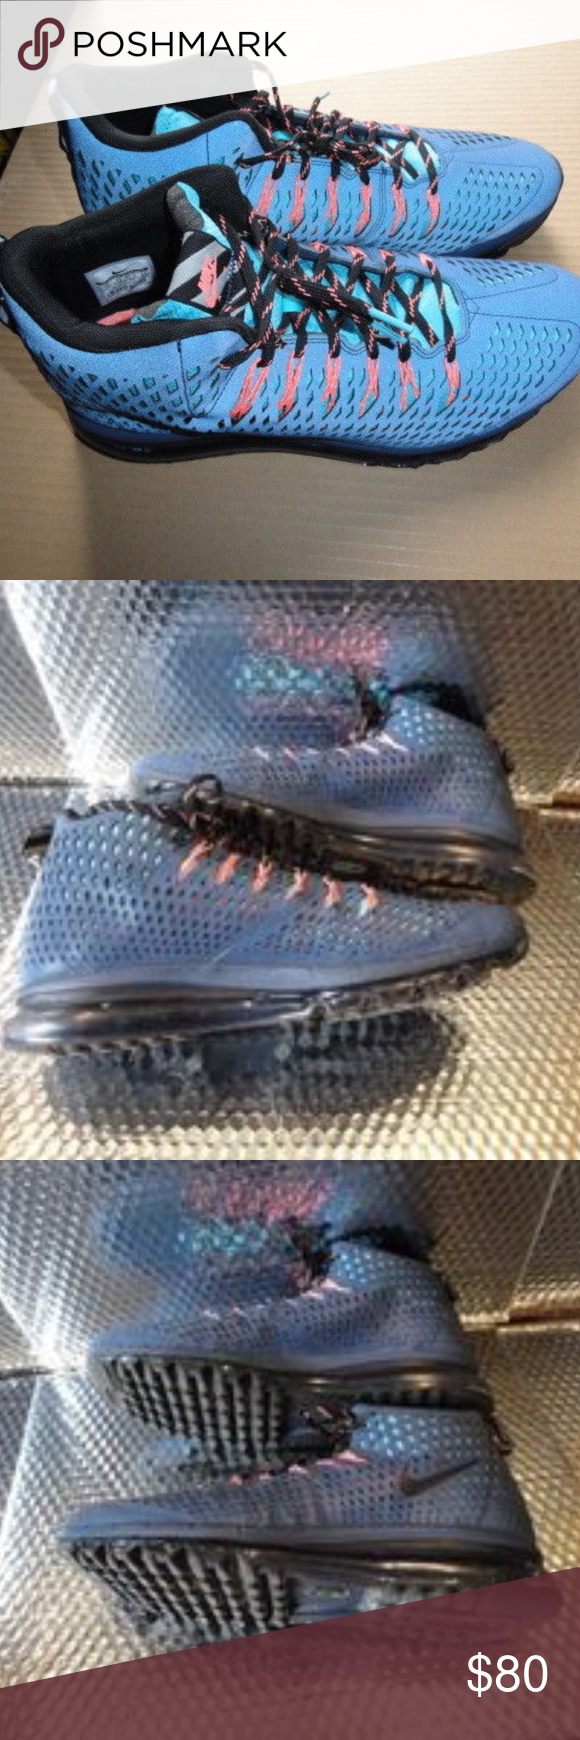 new concept c6def 51e22 Mens NIKE Air Max Graviton Blue Casual Shoes Sneak This is a almost new  pair of